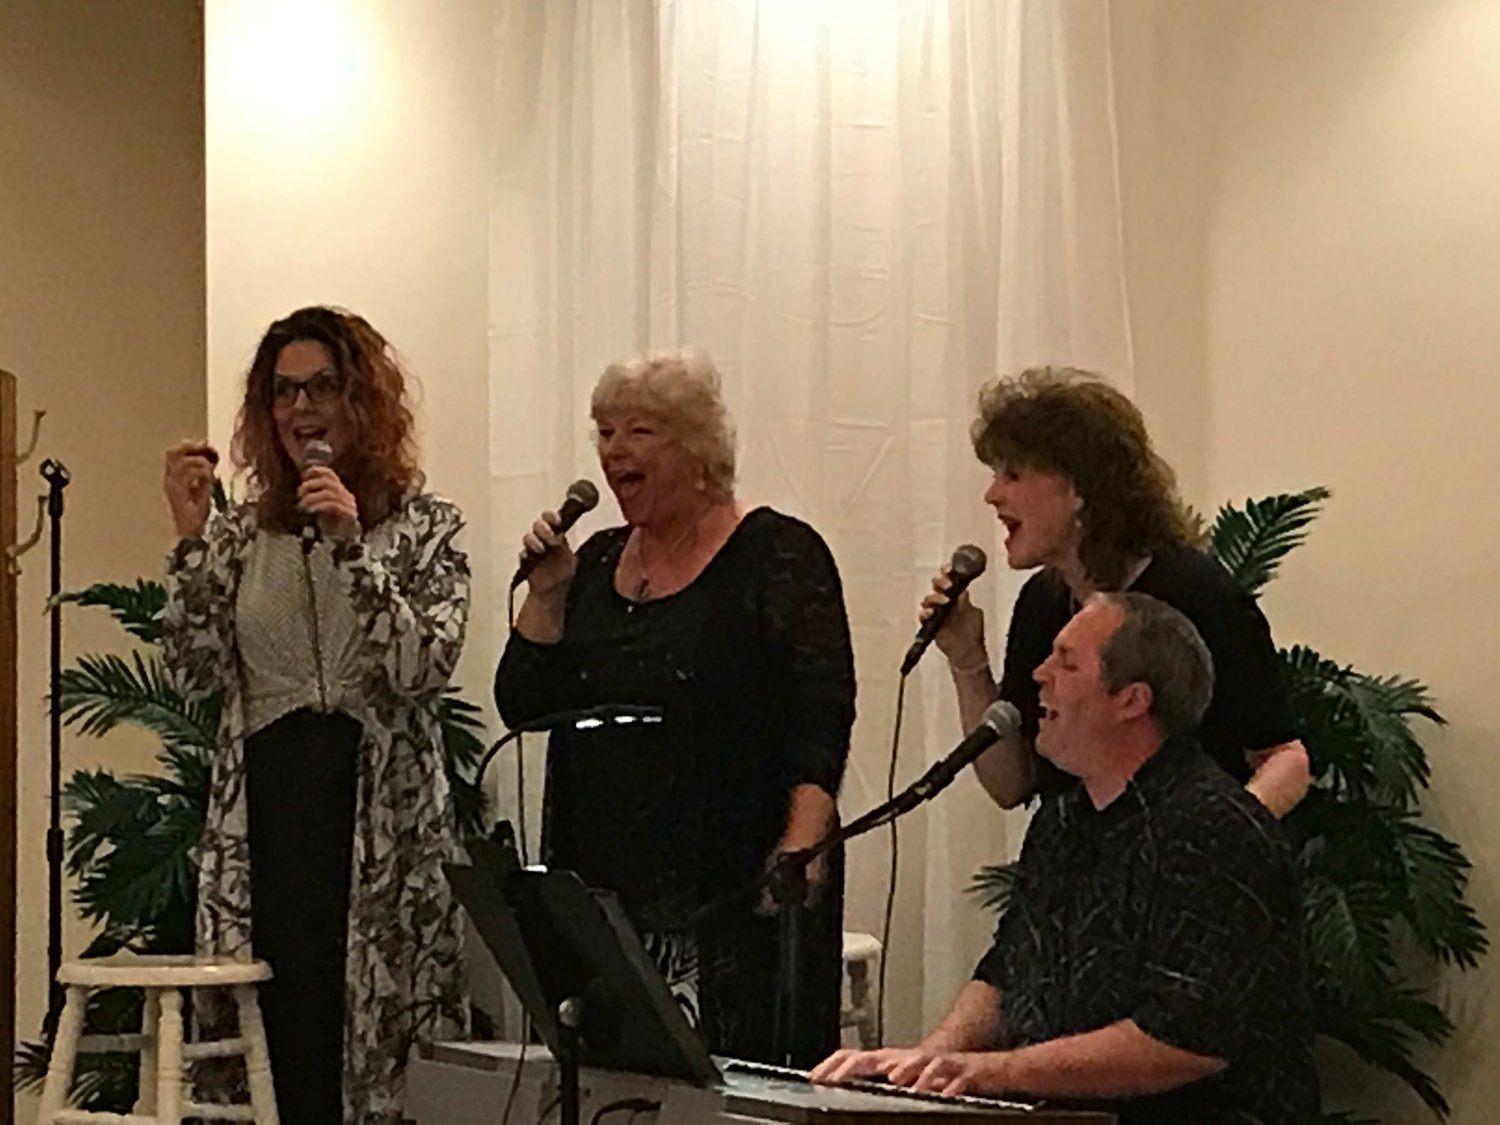 Local group Four A Change performing at the Hotel Magnolia in 2018. They will provide a free concert during the Lucky to Live in Foley celebration.